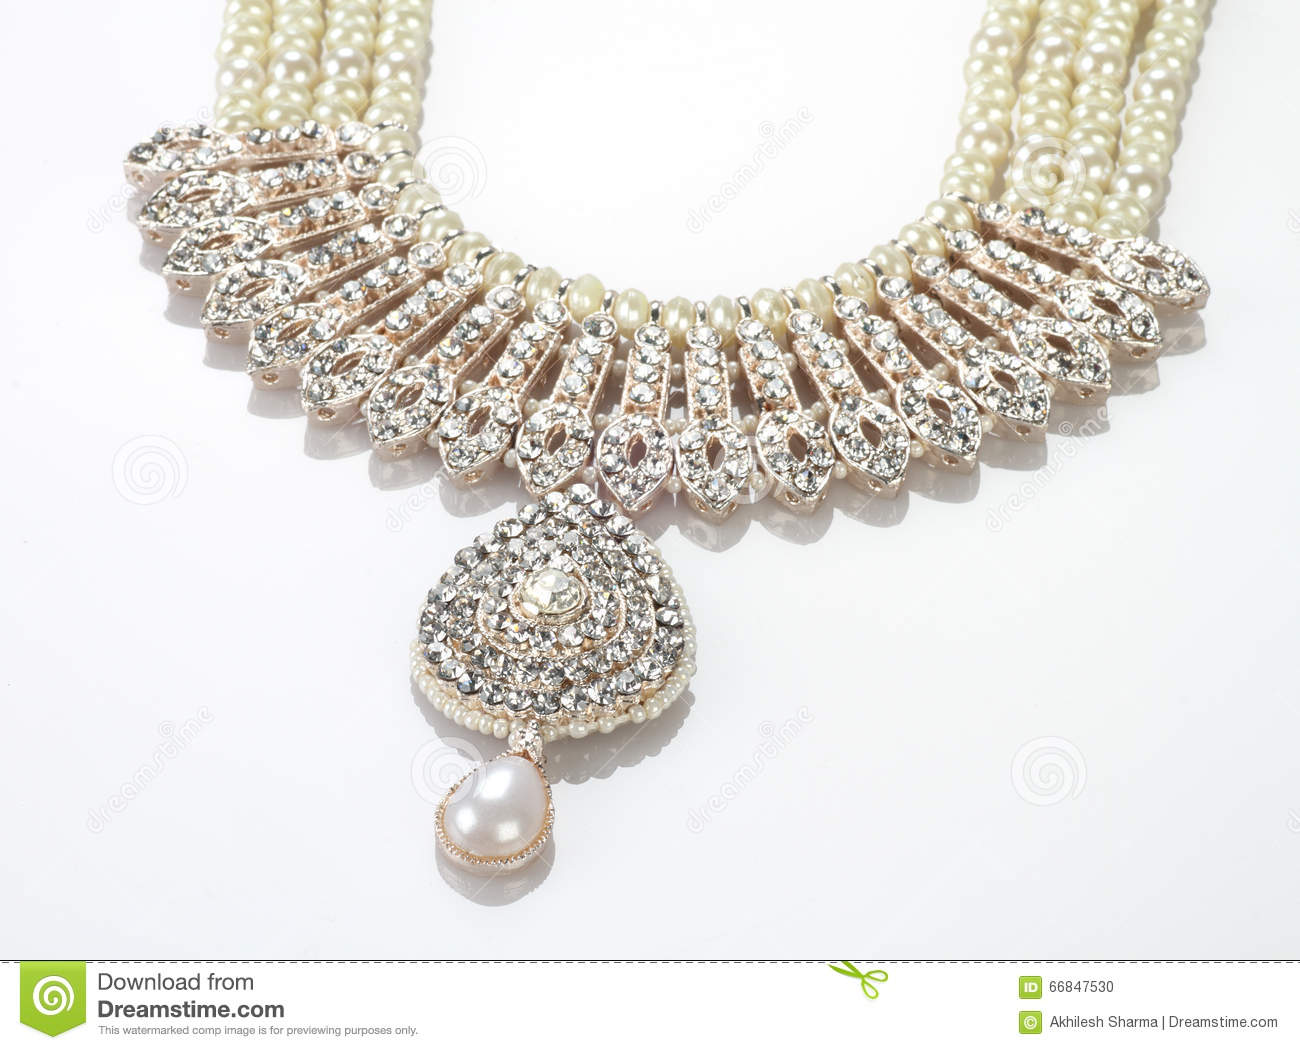 necklaces indian irvlst necklace diamond design latest jewelry womendesigner south for pretty jewellery